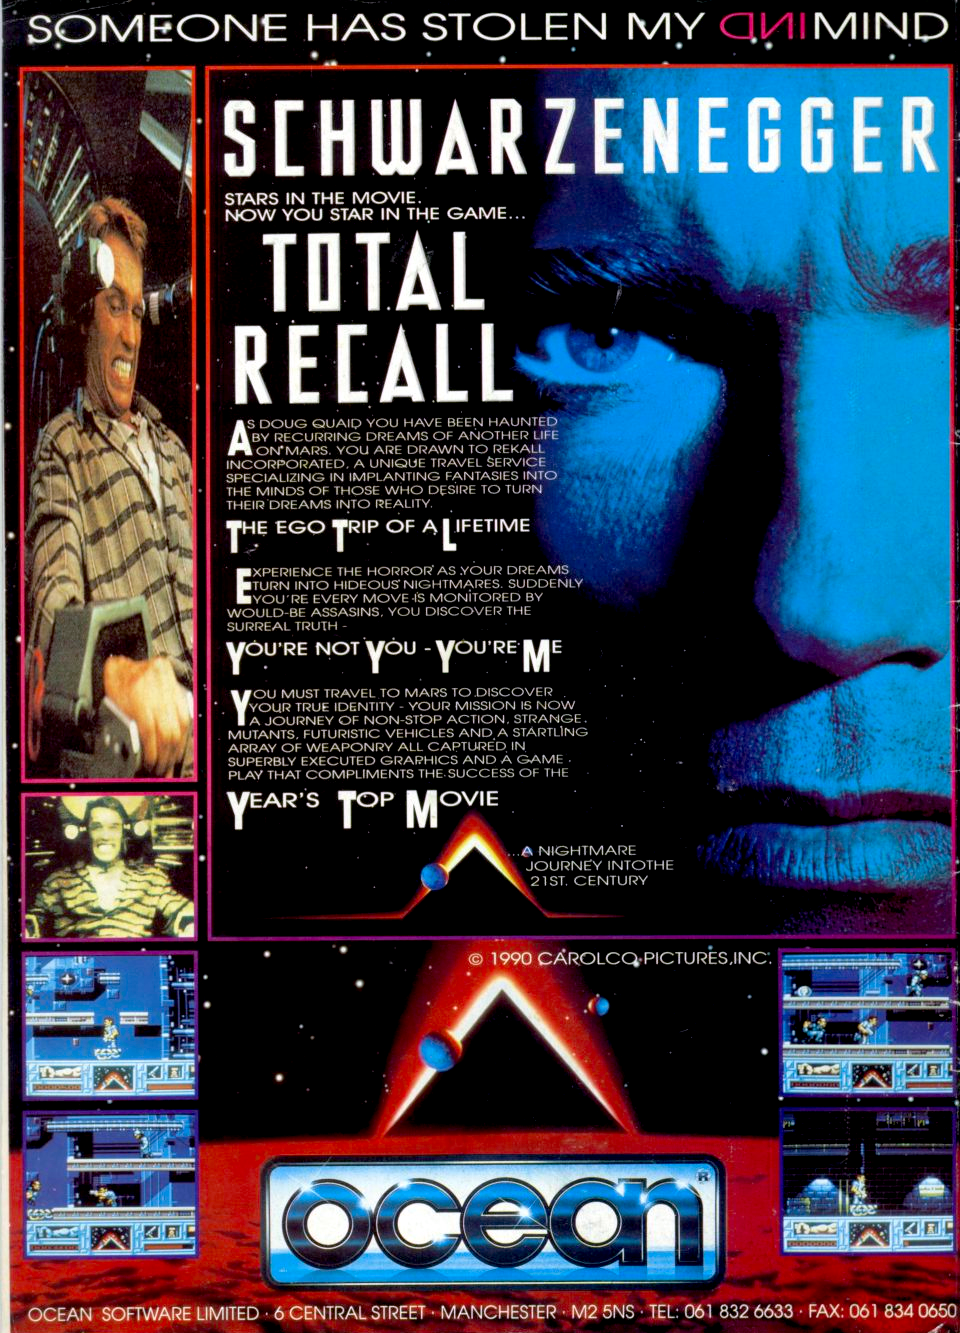 Based on the movie of the same name, Total Recall puts you in charge of Douglas Quaid, who must find a way to Mars in order to find the answers to his two questions: why is he being hunted, and who is hunting him. In order to do this, Quaid must go through level after level of beating up bad guys that get in his way.  Some of the levels differ in gameplay, and range between action and driving scenes. The action scenes mainly require you to collect some items before leaving the level. You have only one chance to complete the current level, which means that if your energy is lost, the game ends. Energy is lost if you are attacked by an obstacle, or if you are shot at by an enemy. You can gain more energy by either collecting some pills or a heart, depending on the platform.